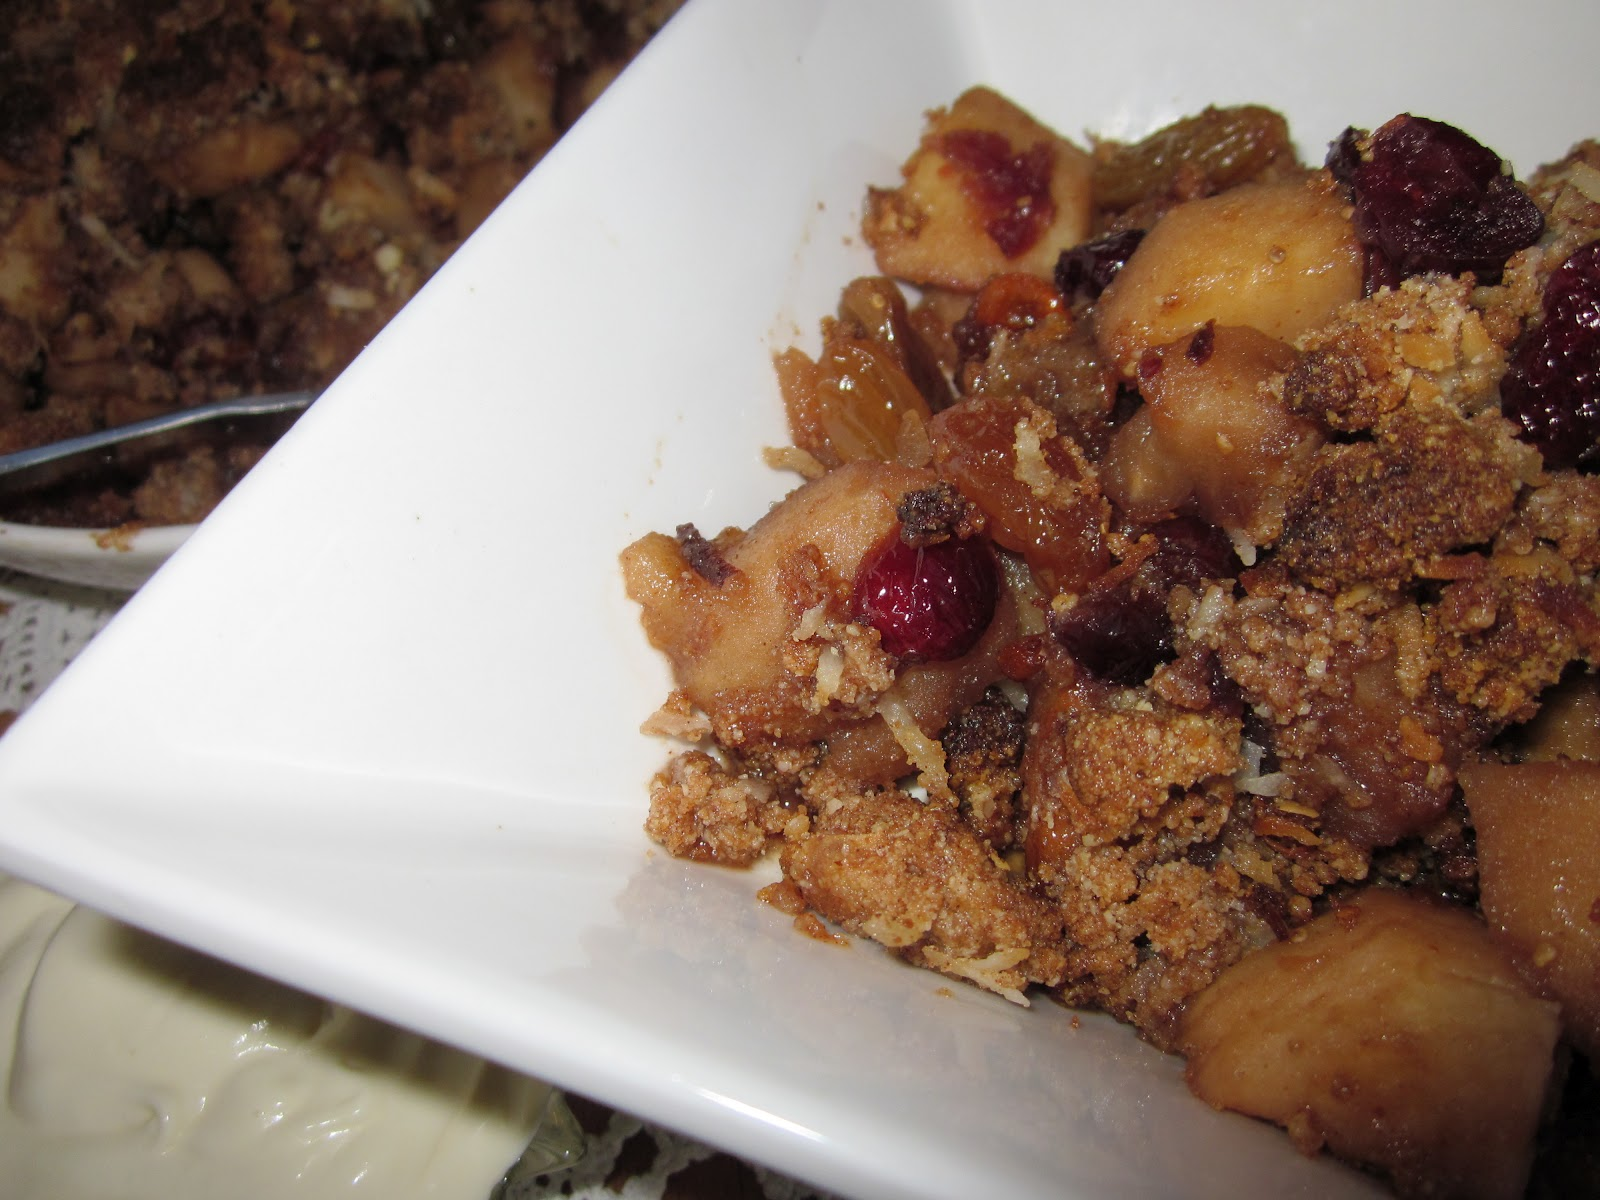 whatisforteatonight: Apple, Dried Fruit & Almond Meal Crumble